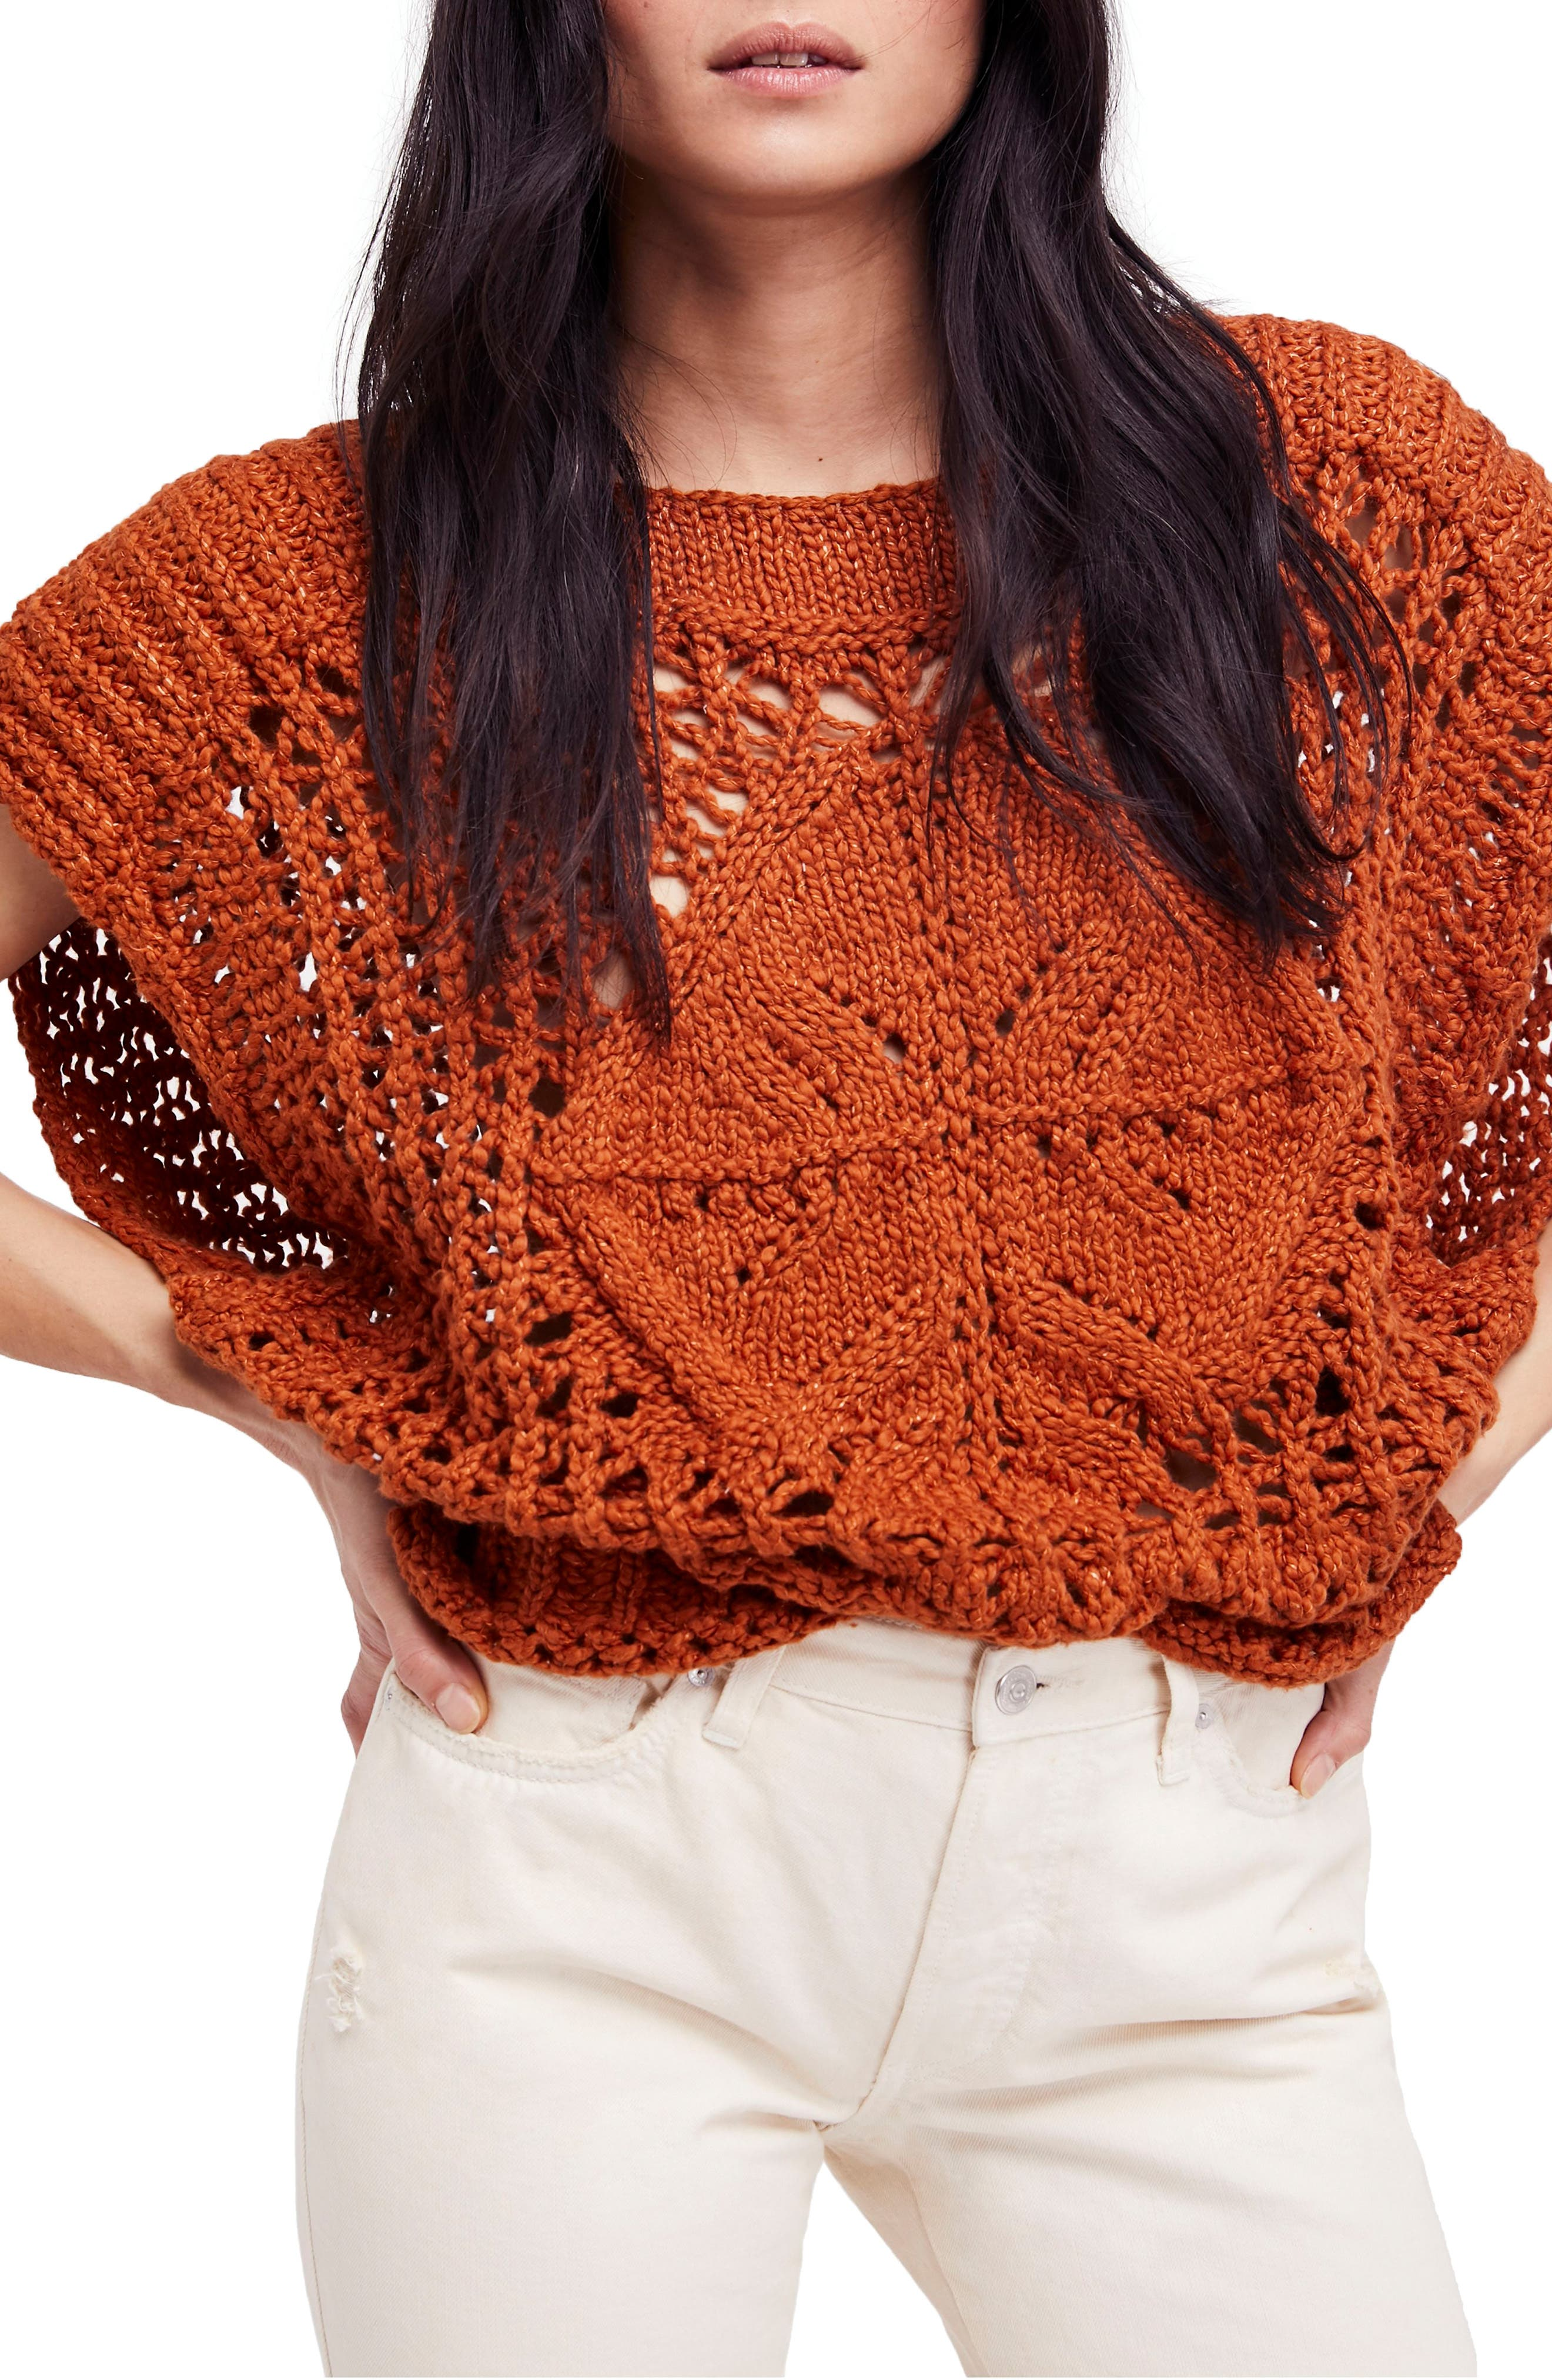 Diamond in the Rough Sweater,                             Main thumbnail 1, color,                             Terracotta